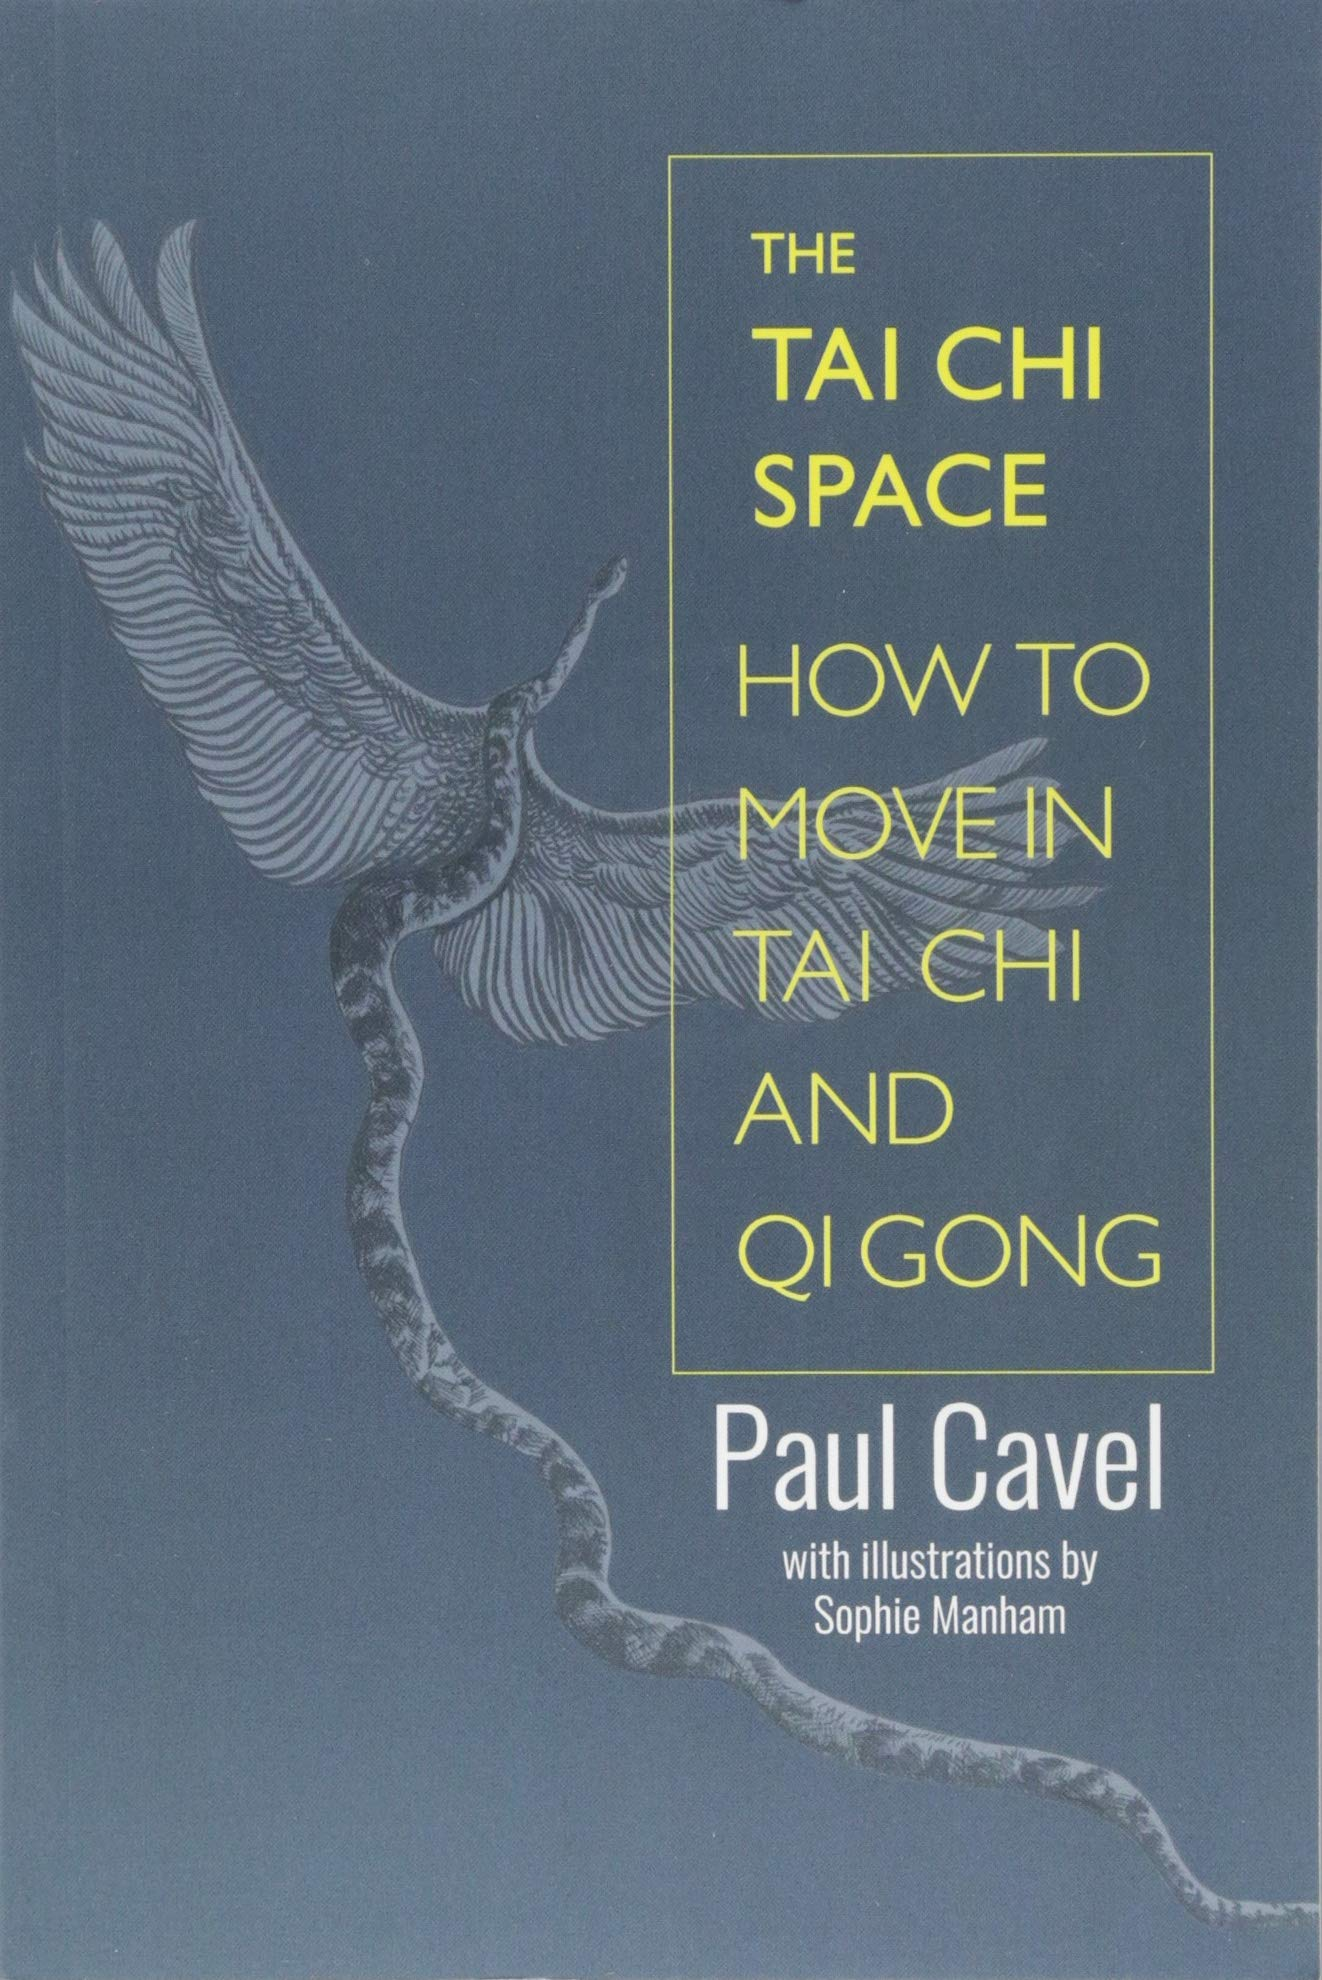 The Tai Chi Space  How To Move In Tai Chi And Qi Gong